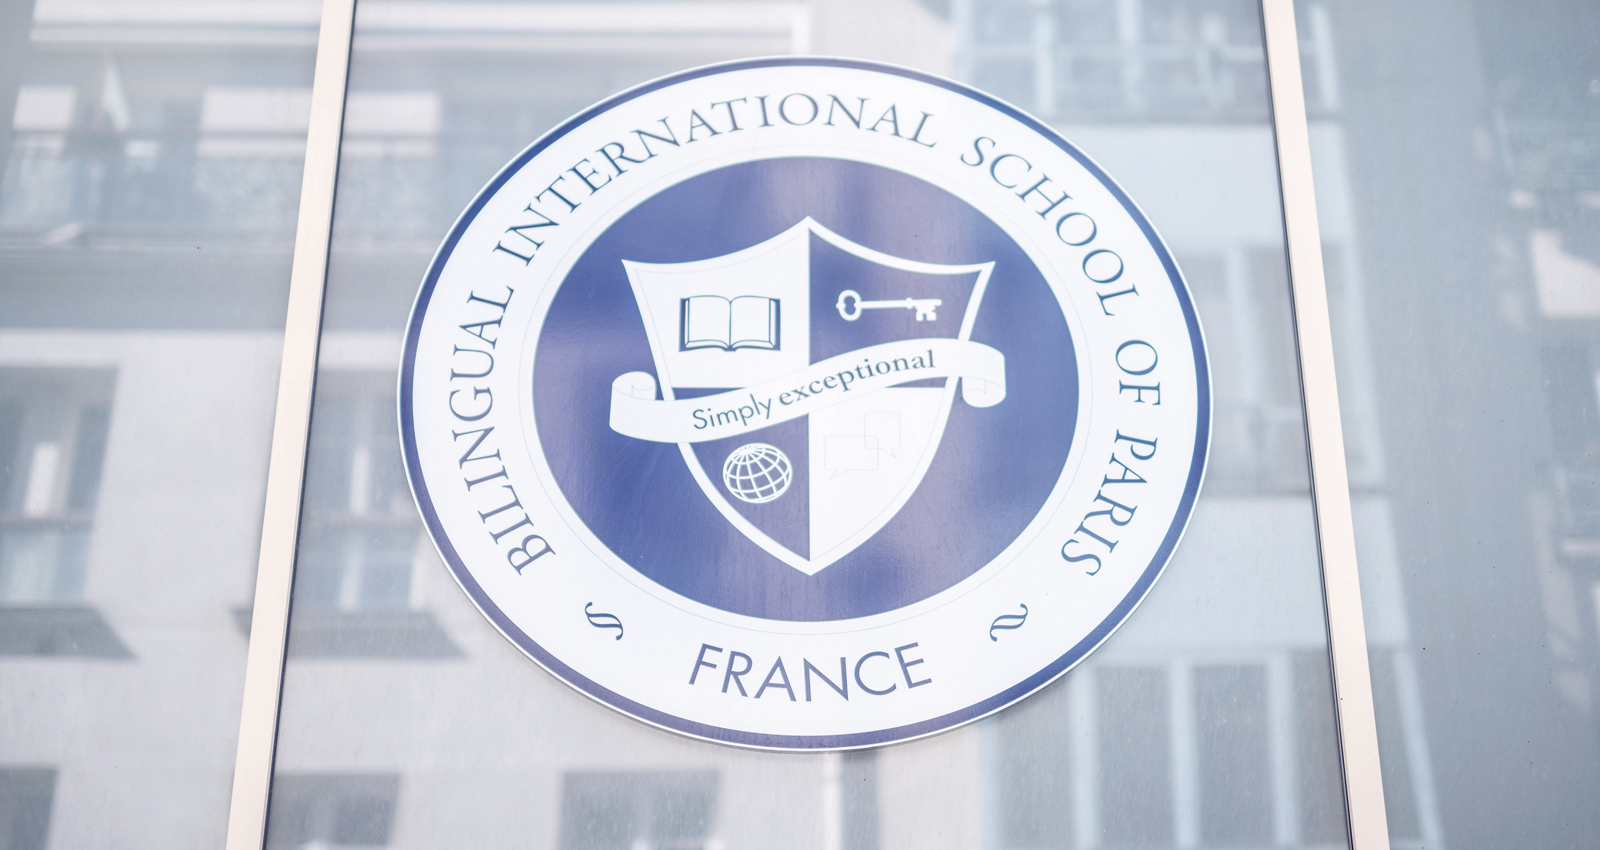 The Bilingual International School of Paris logo on the front faceda of the school